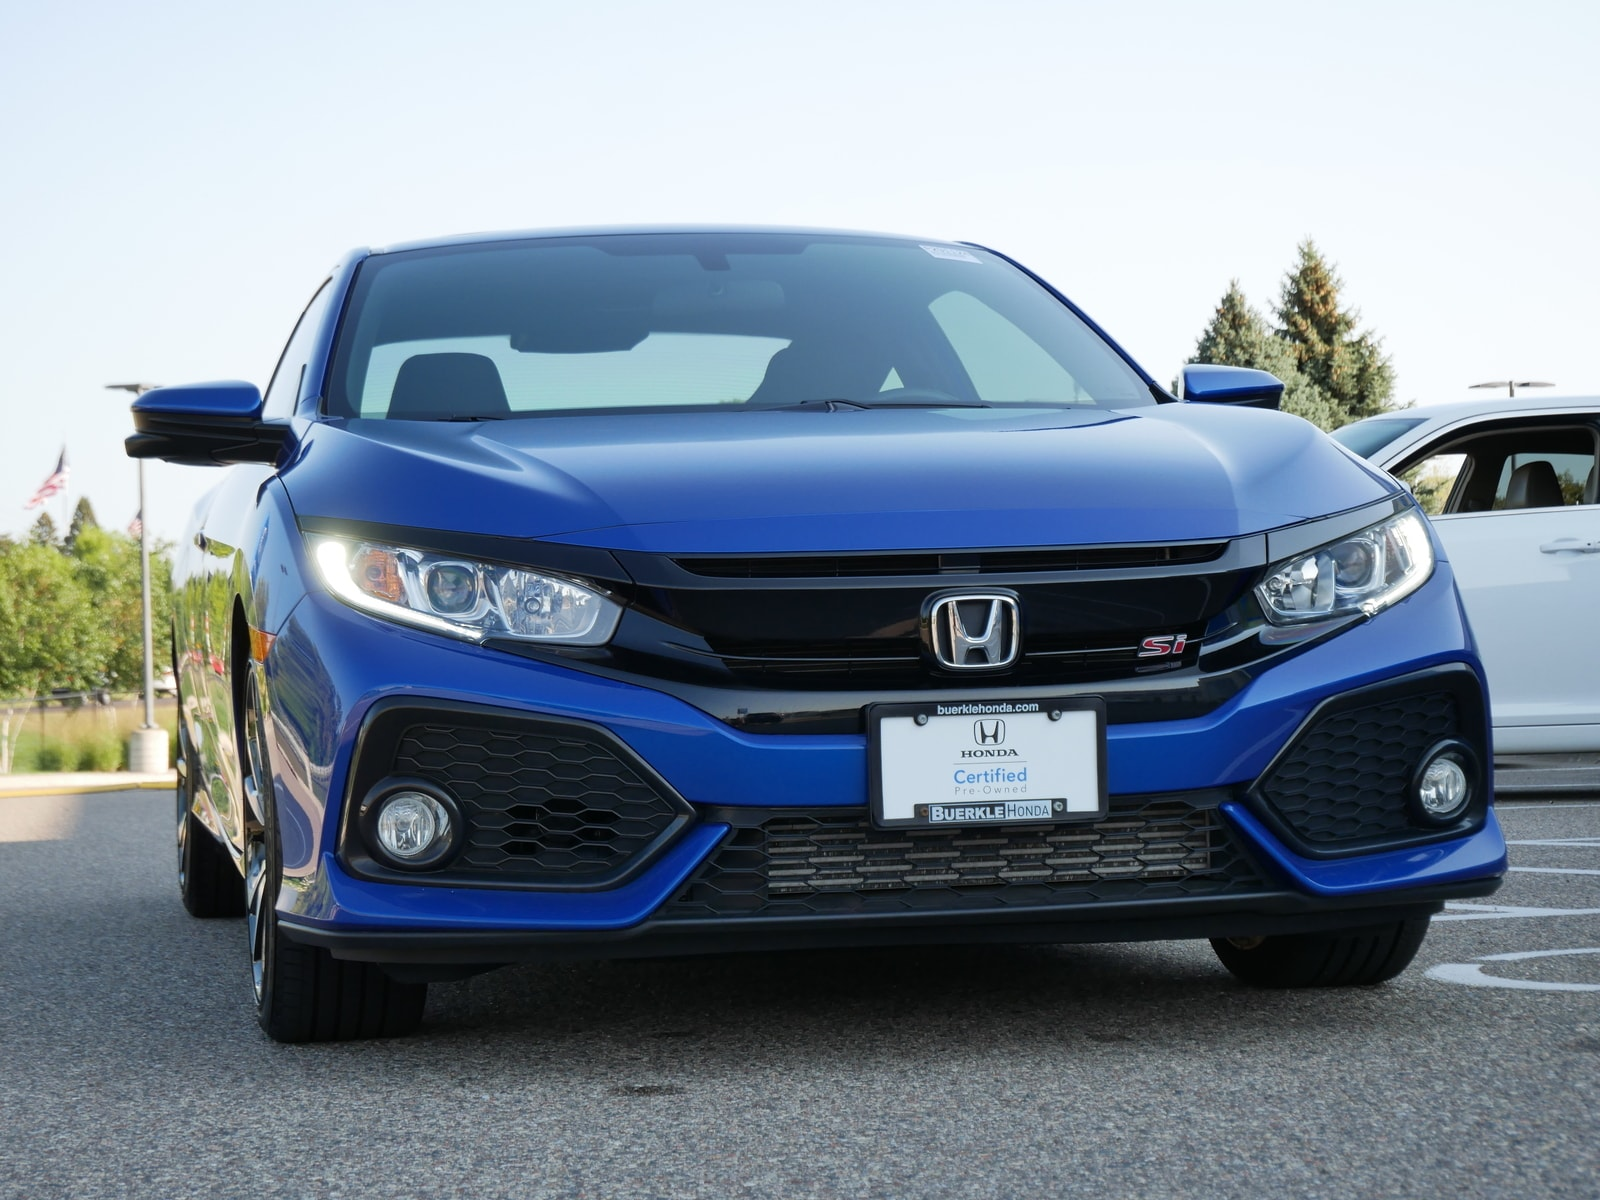 Certified 2019 Honda Civic Si with VIN 2HGFC3A50KH752827 for sale in Saint Paul, Minnesota